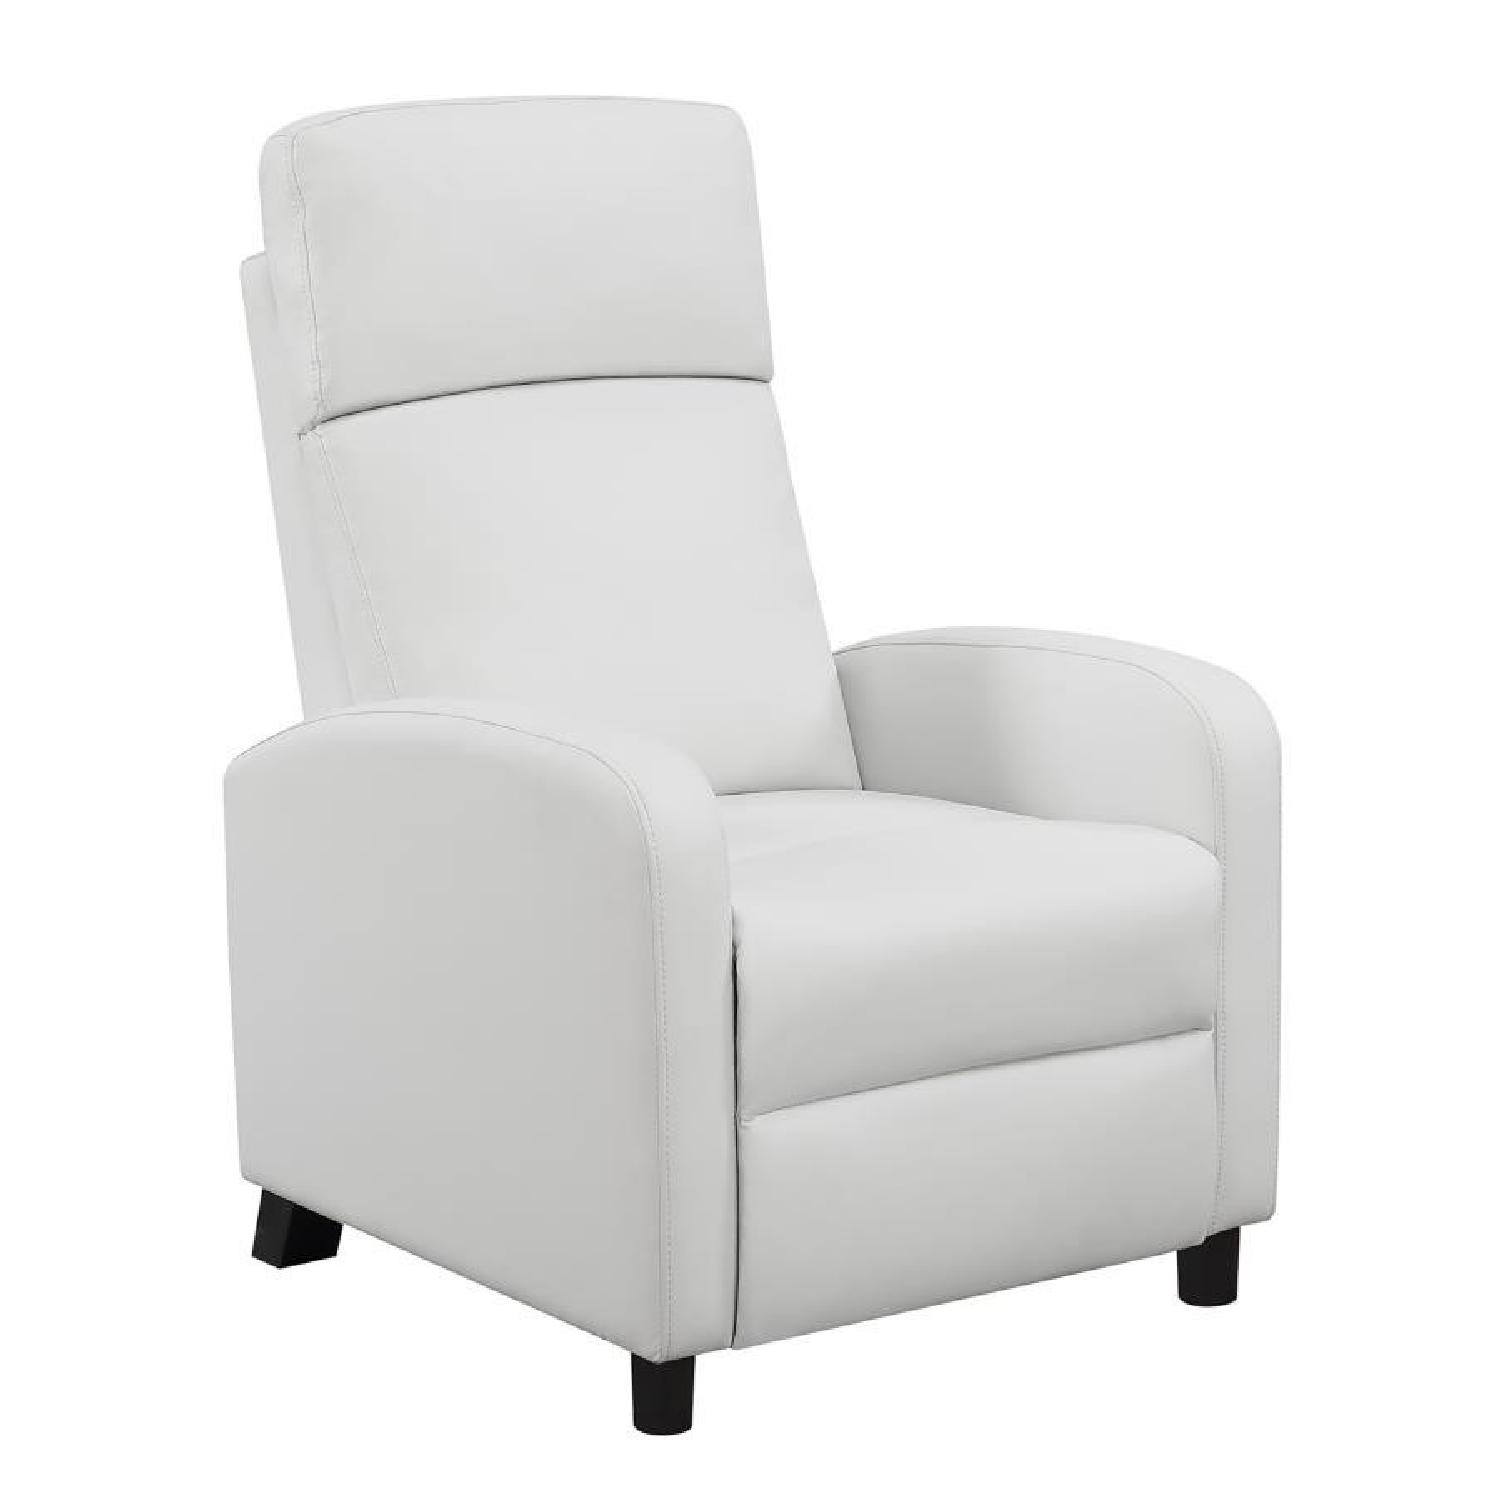 Compact Recliner Chair in White Leatherette-1